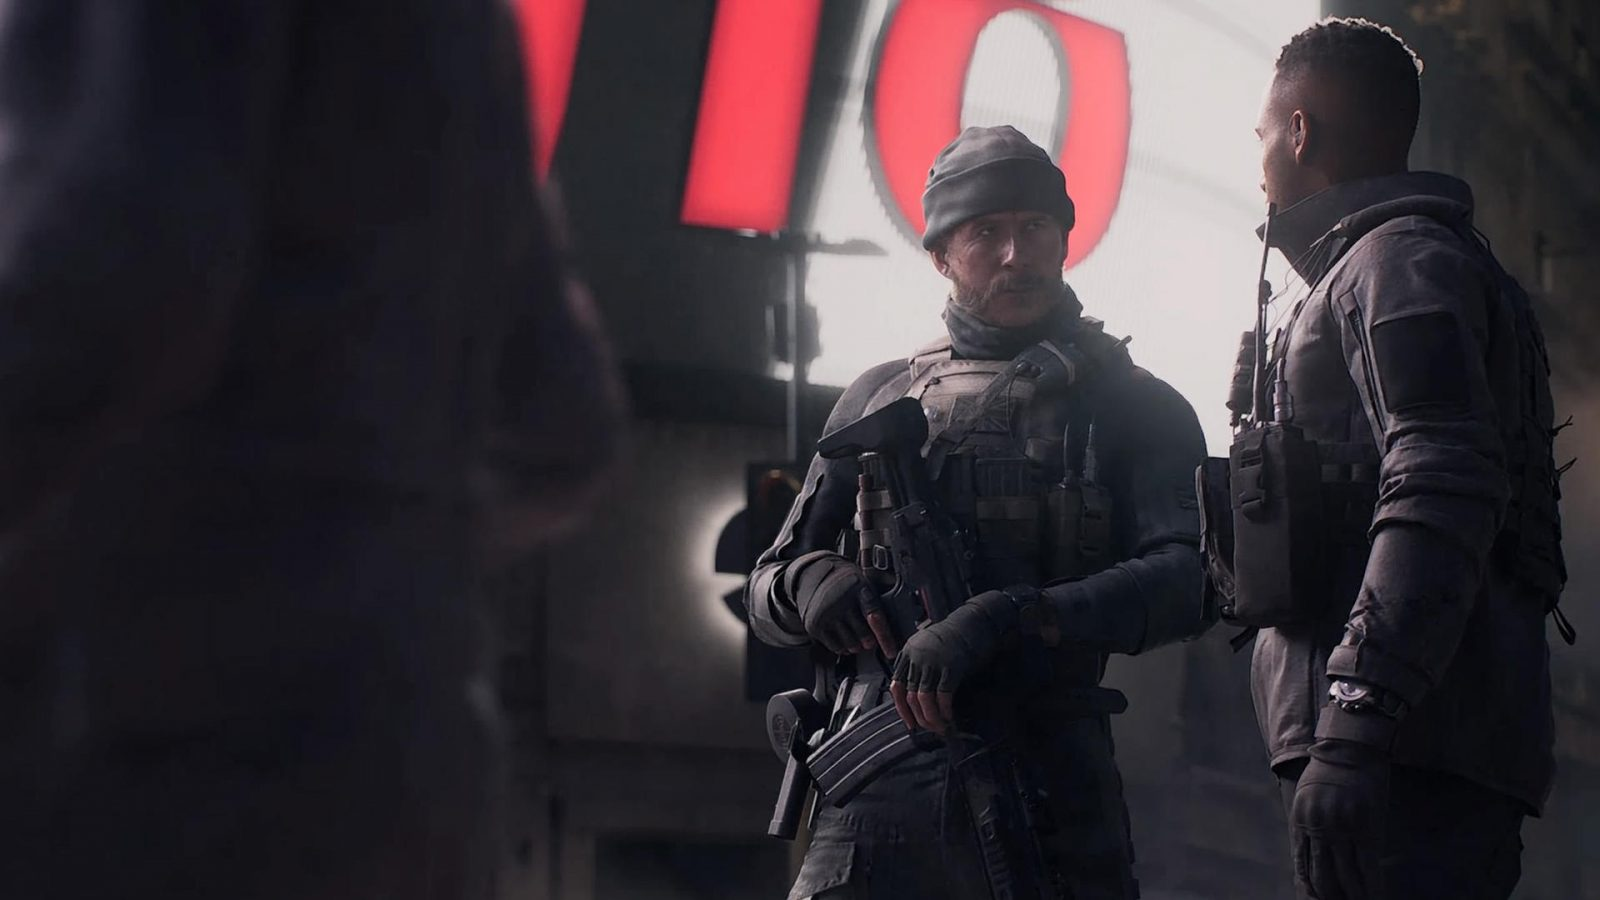 Call of Duty: Modern Warfare Datamine Indicates Some Classic Maps May Return